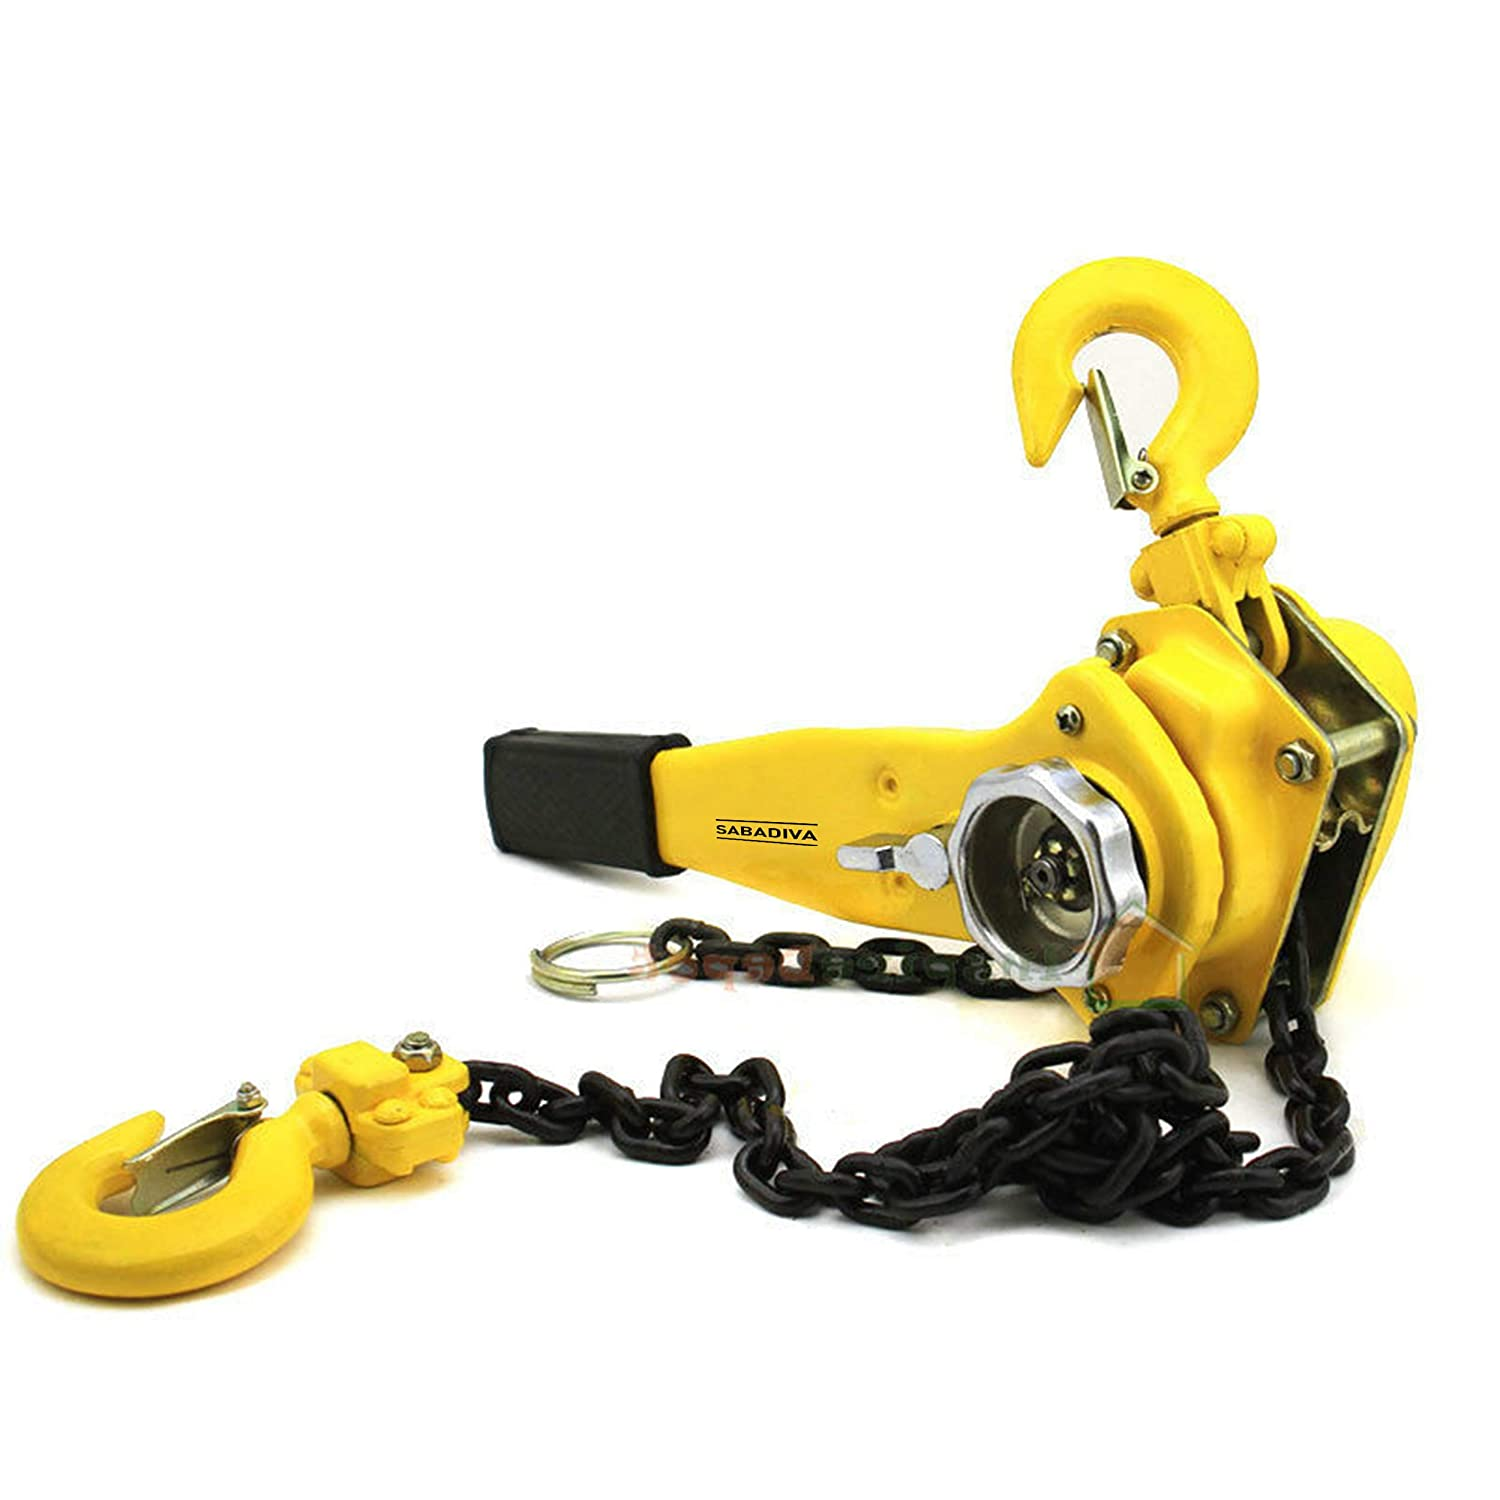 1 Pc Chain Hoist 3//4 Ton Lever Block Ratchet Type Come Along Puller 5ft Chain Lifter Pulling Hook SABADIVA Come Along Winch Hoist Pulley